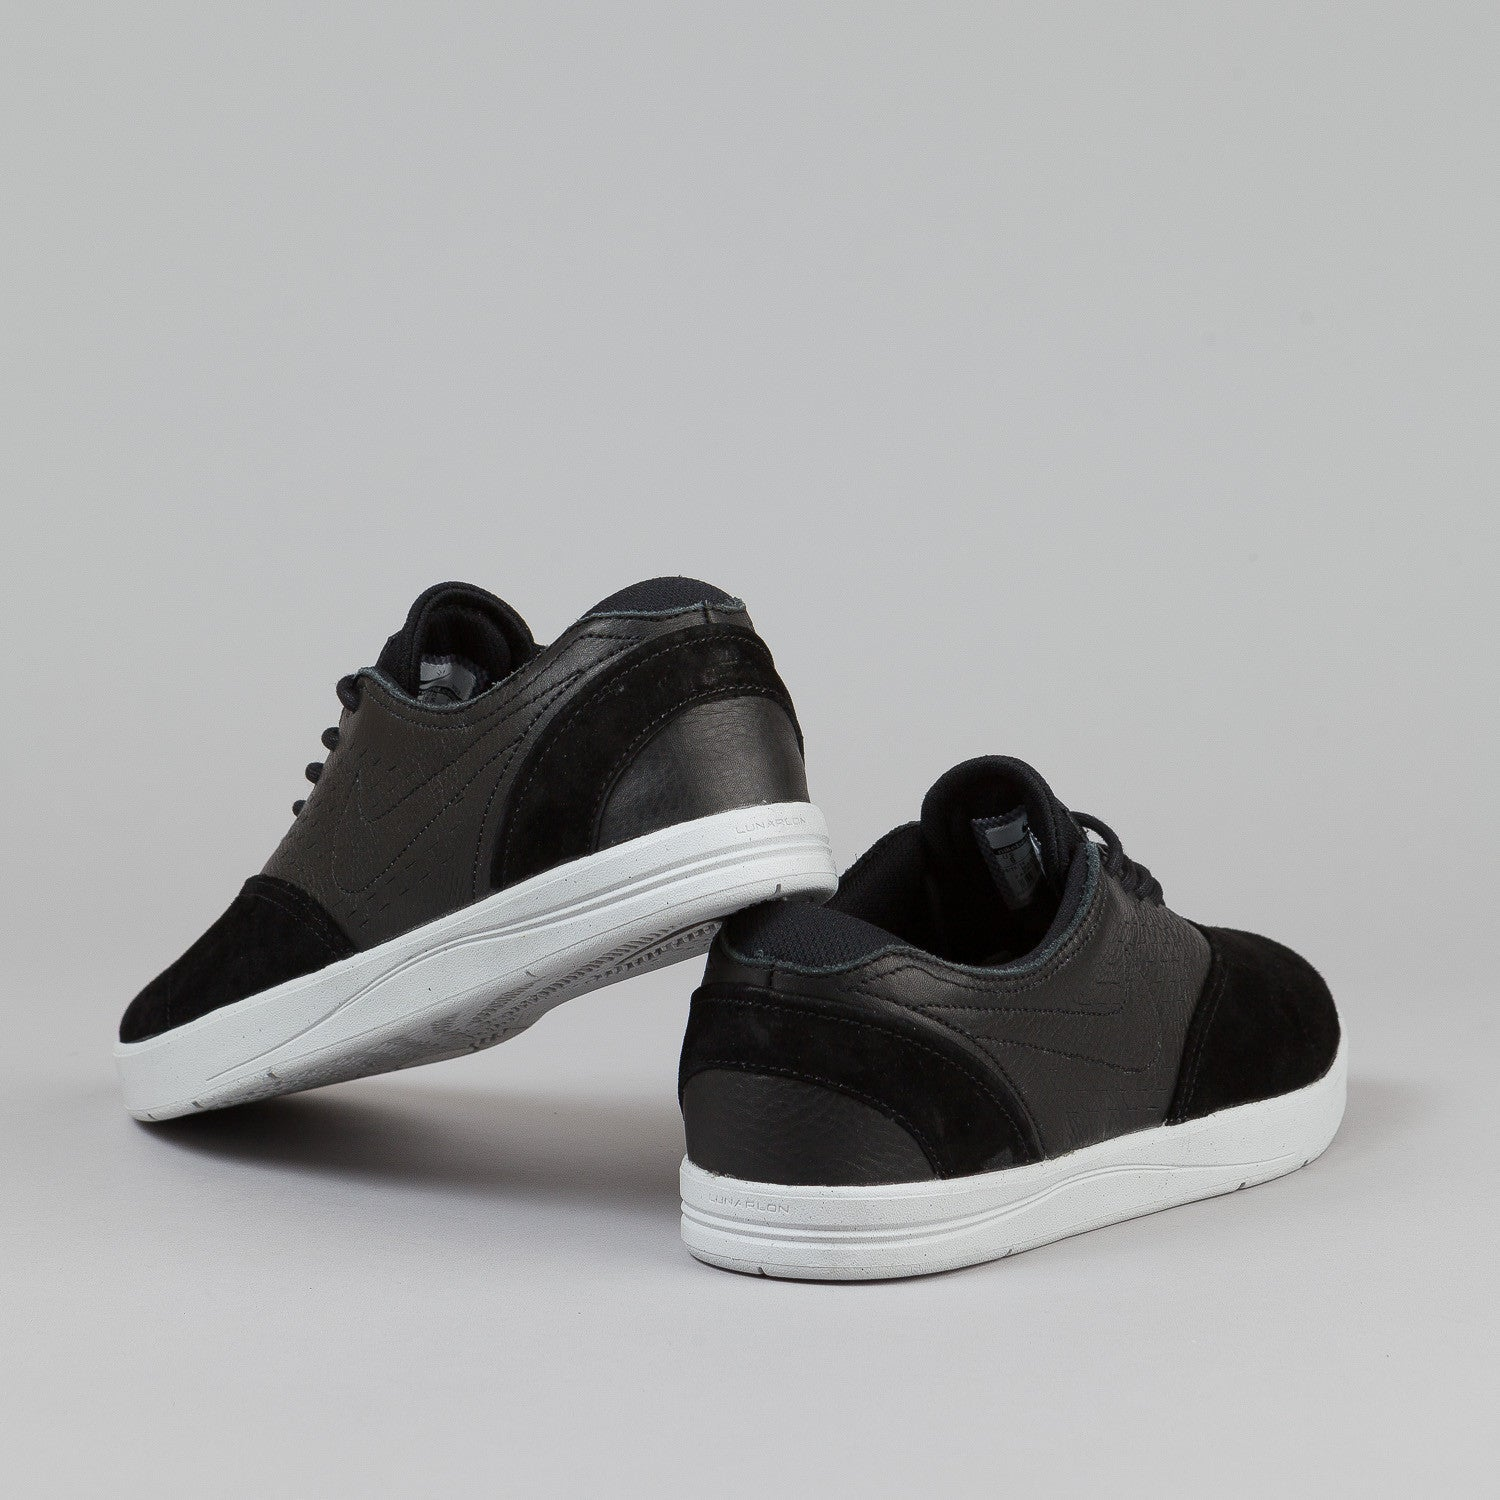 Nike SB Eric Koston PR Black / Black - Light Ash Grey